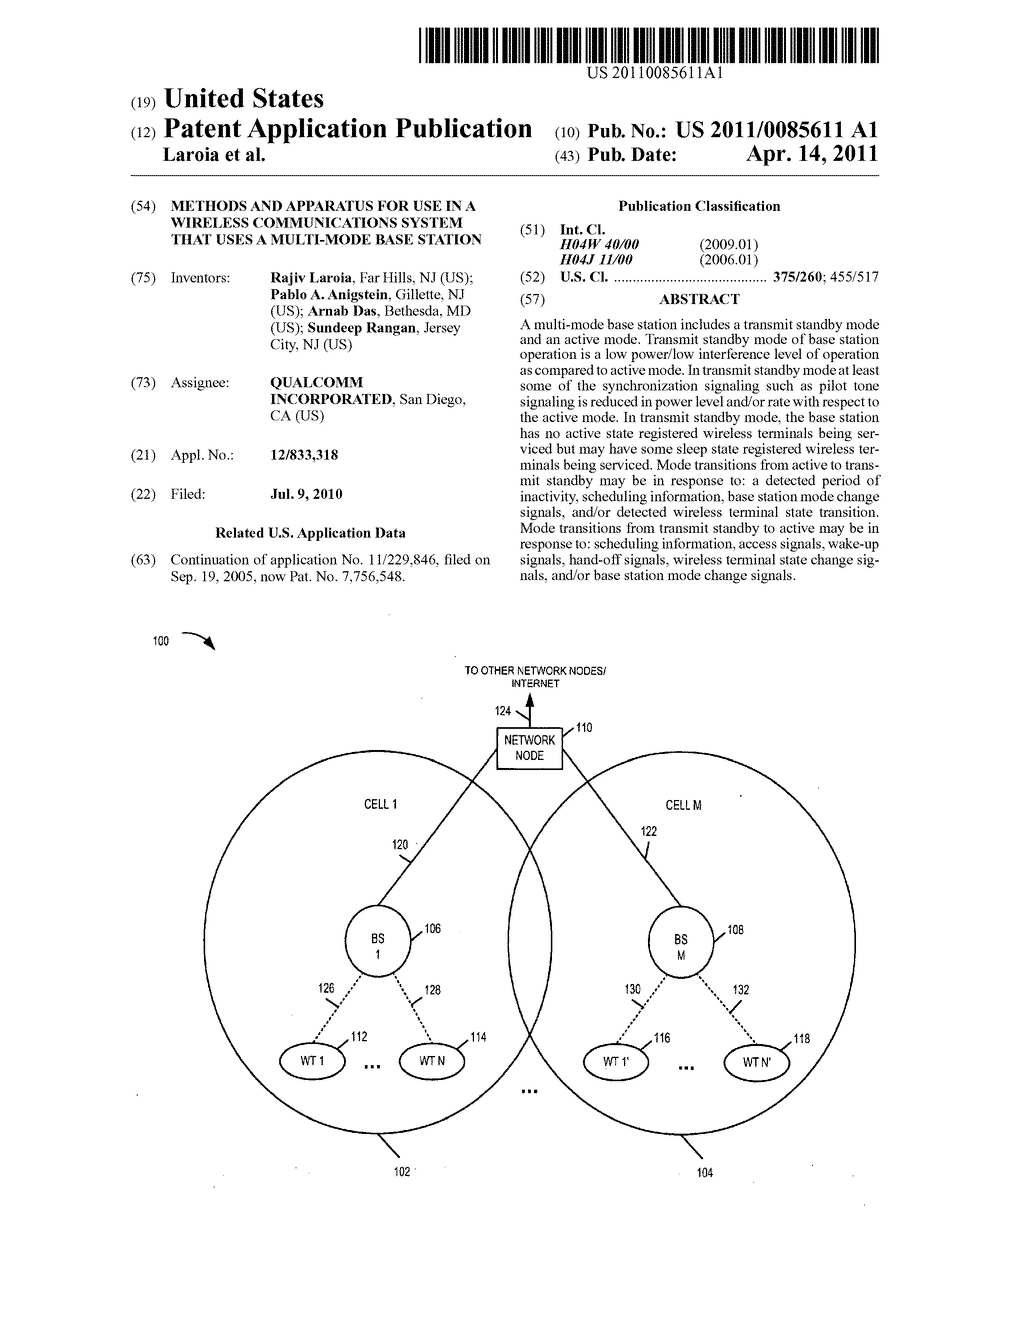 METHODS AND APPARATUS FOR USE IN A WIRELESS COMMUNICATIONS SYSTEM THAT USES A MULTI-MODE BASE STATION - diagram, schematic, and image 01